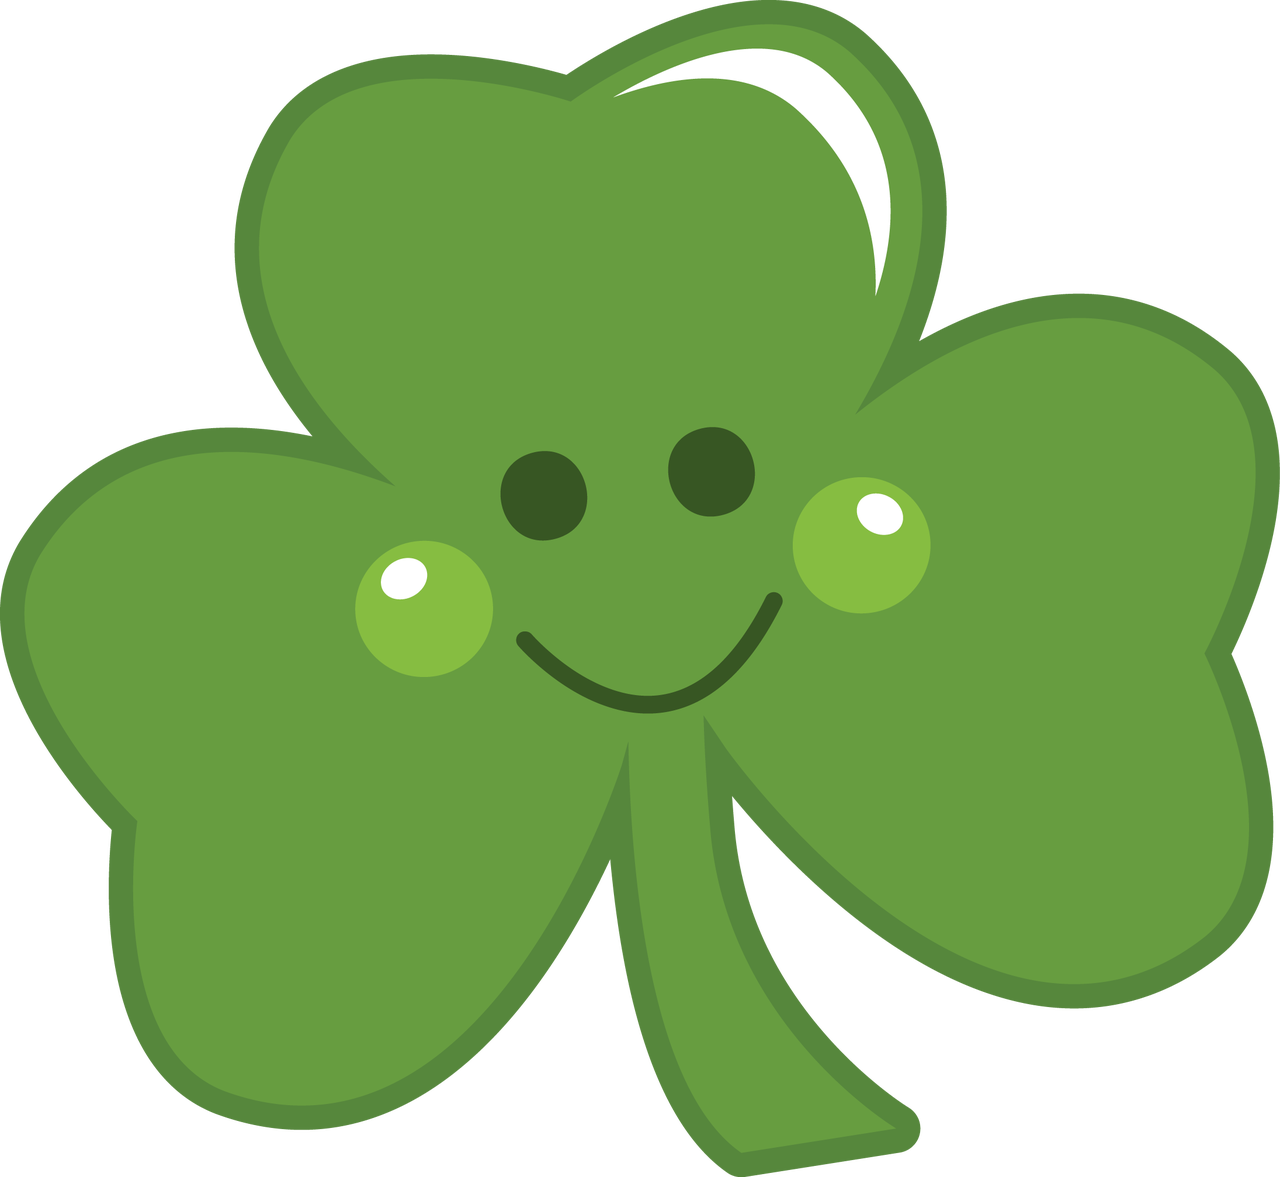 clip library stock Pretty clipart. Shamrock free on dumielauxepices.